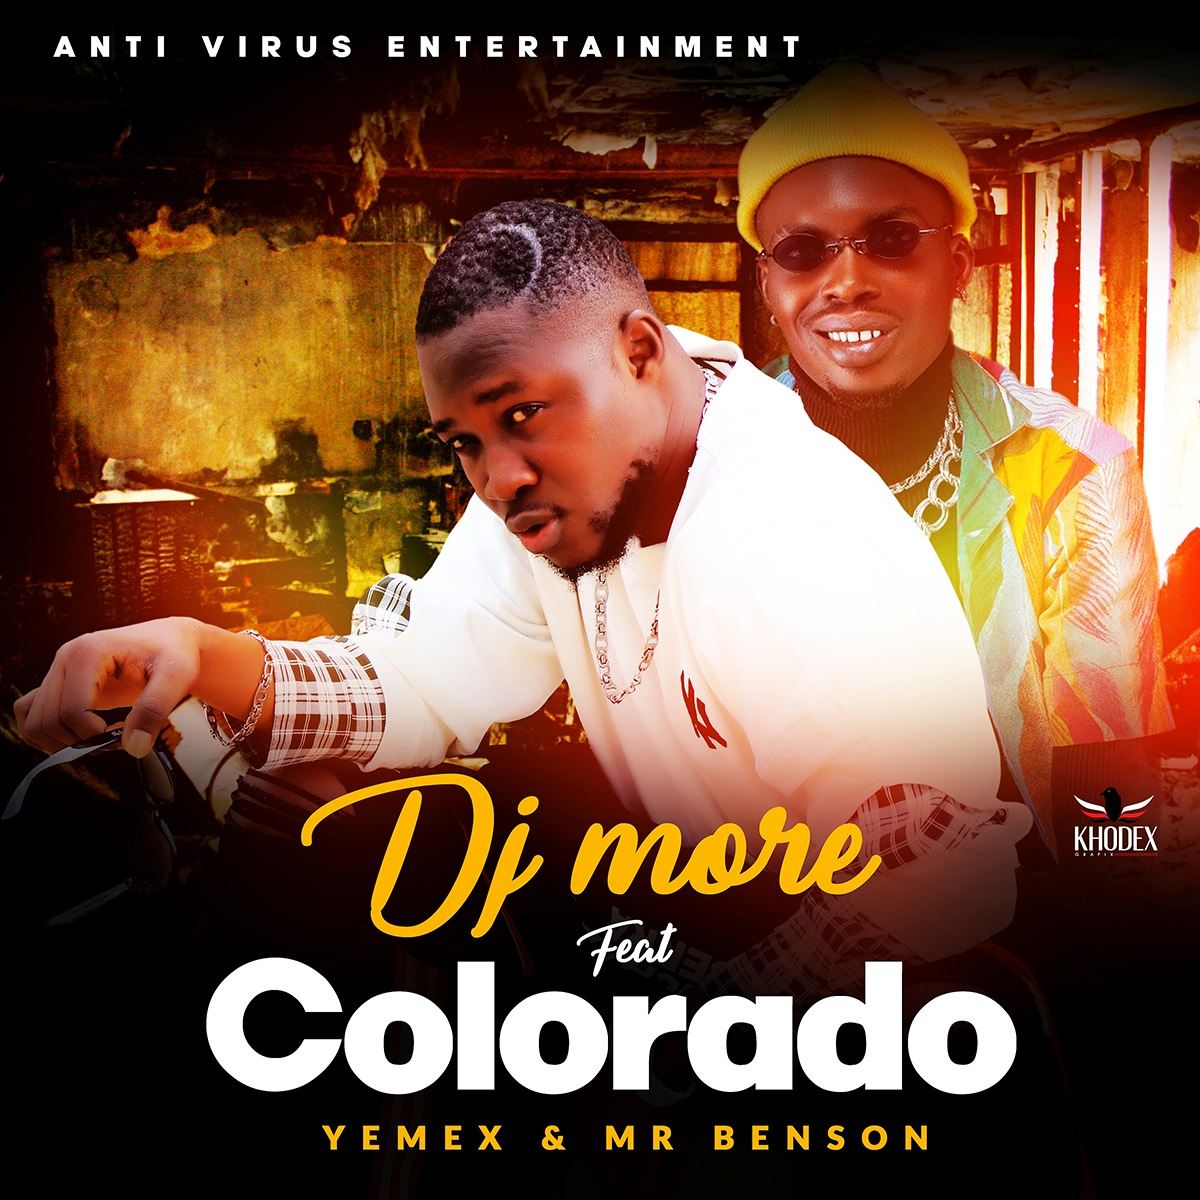 DJ More Ft. Yemex & Mr Benson - Colorado